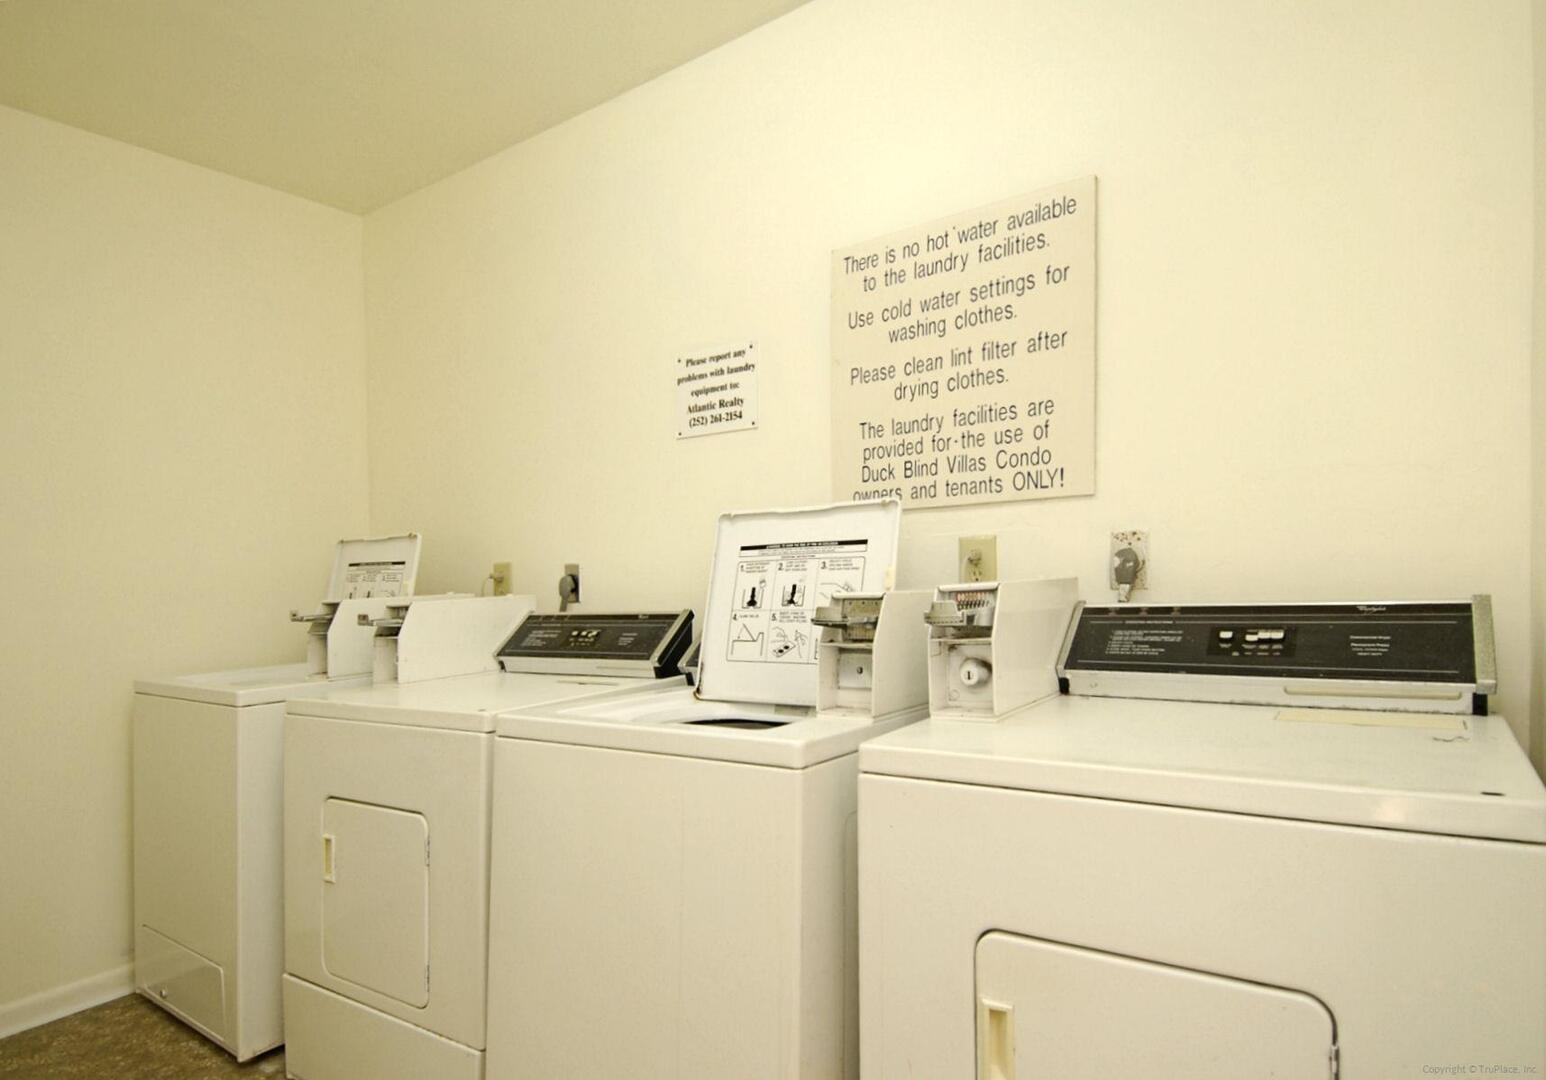 Amenity,Duck Blind Villas Laundry Room,